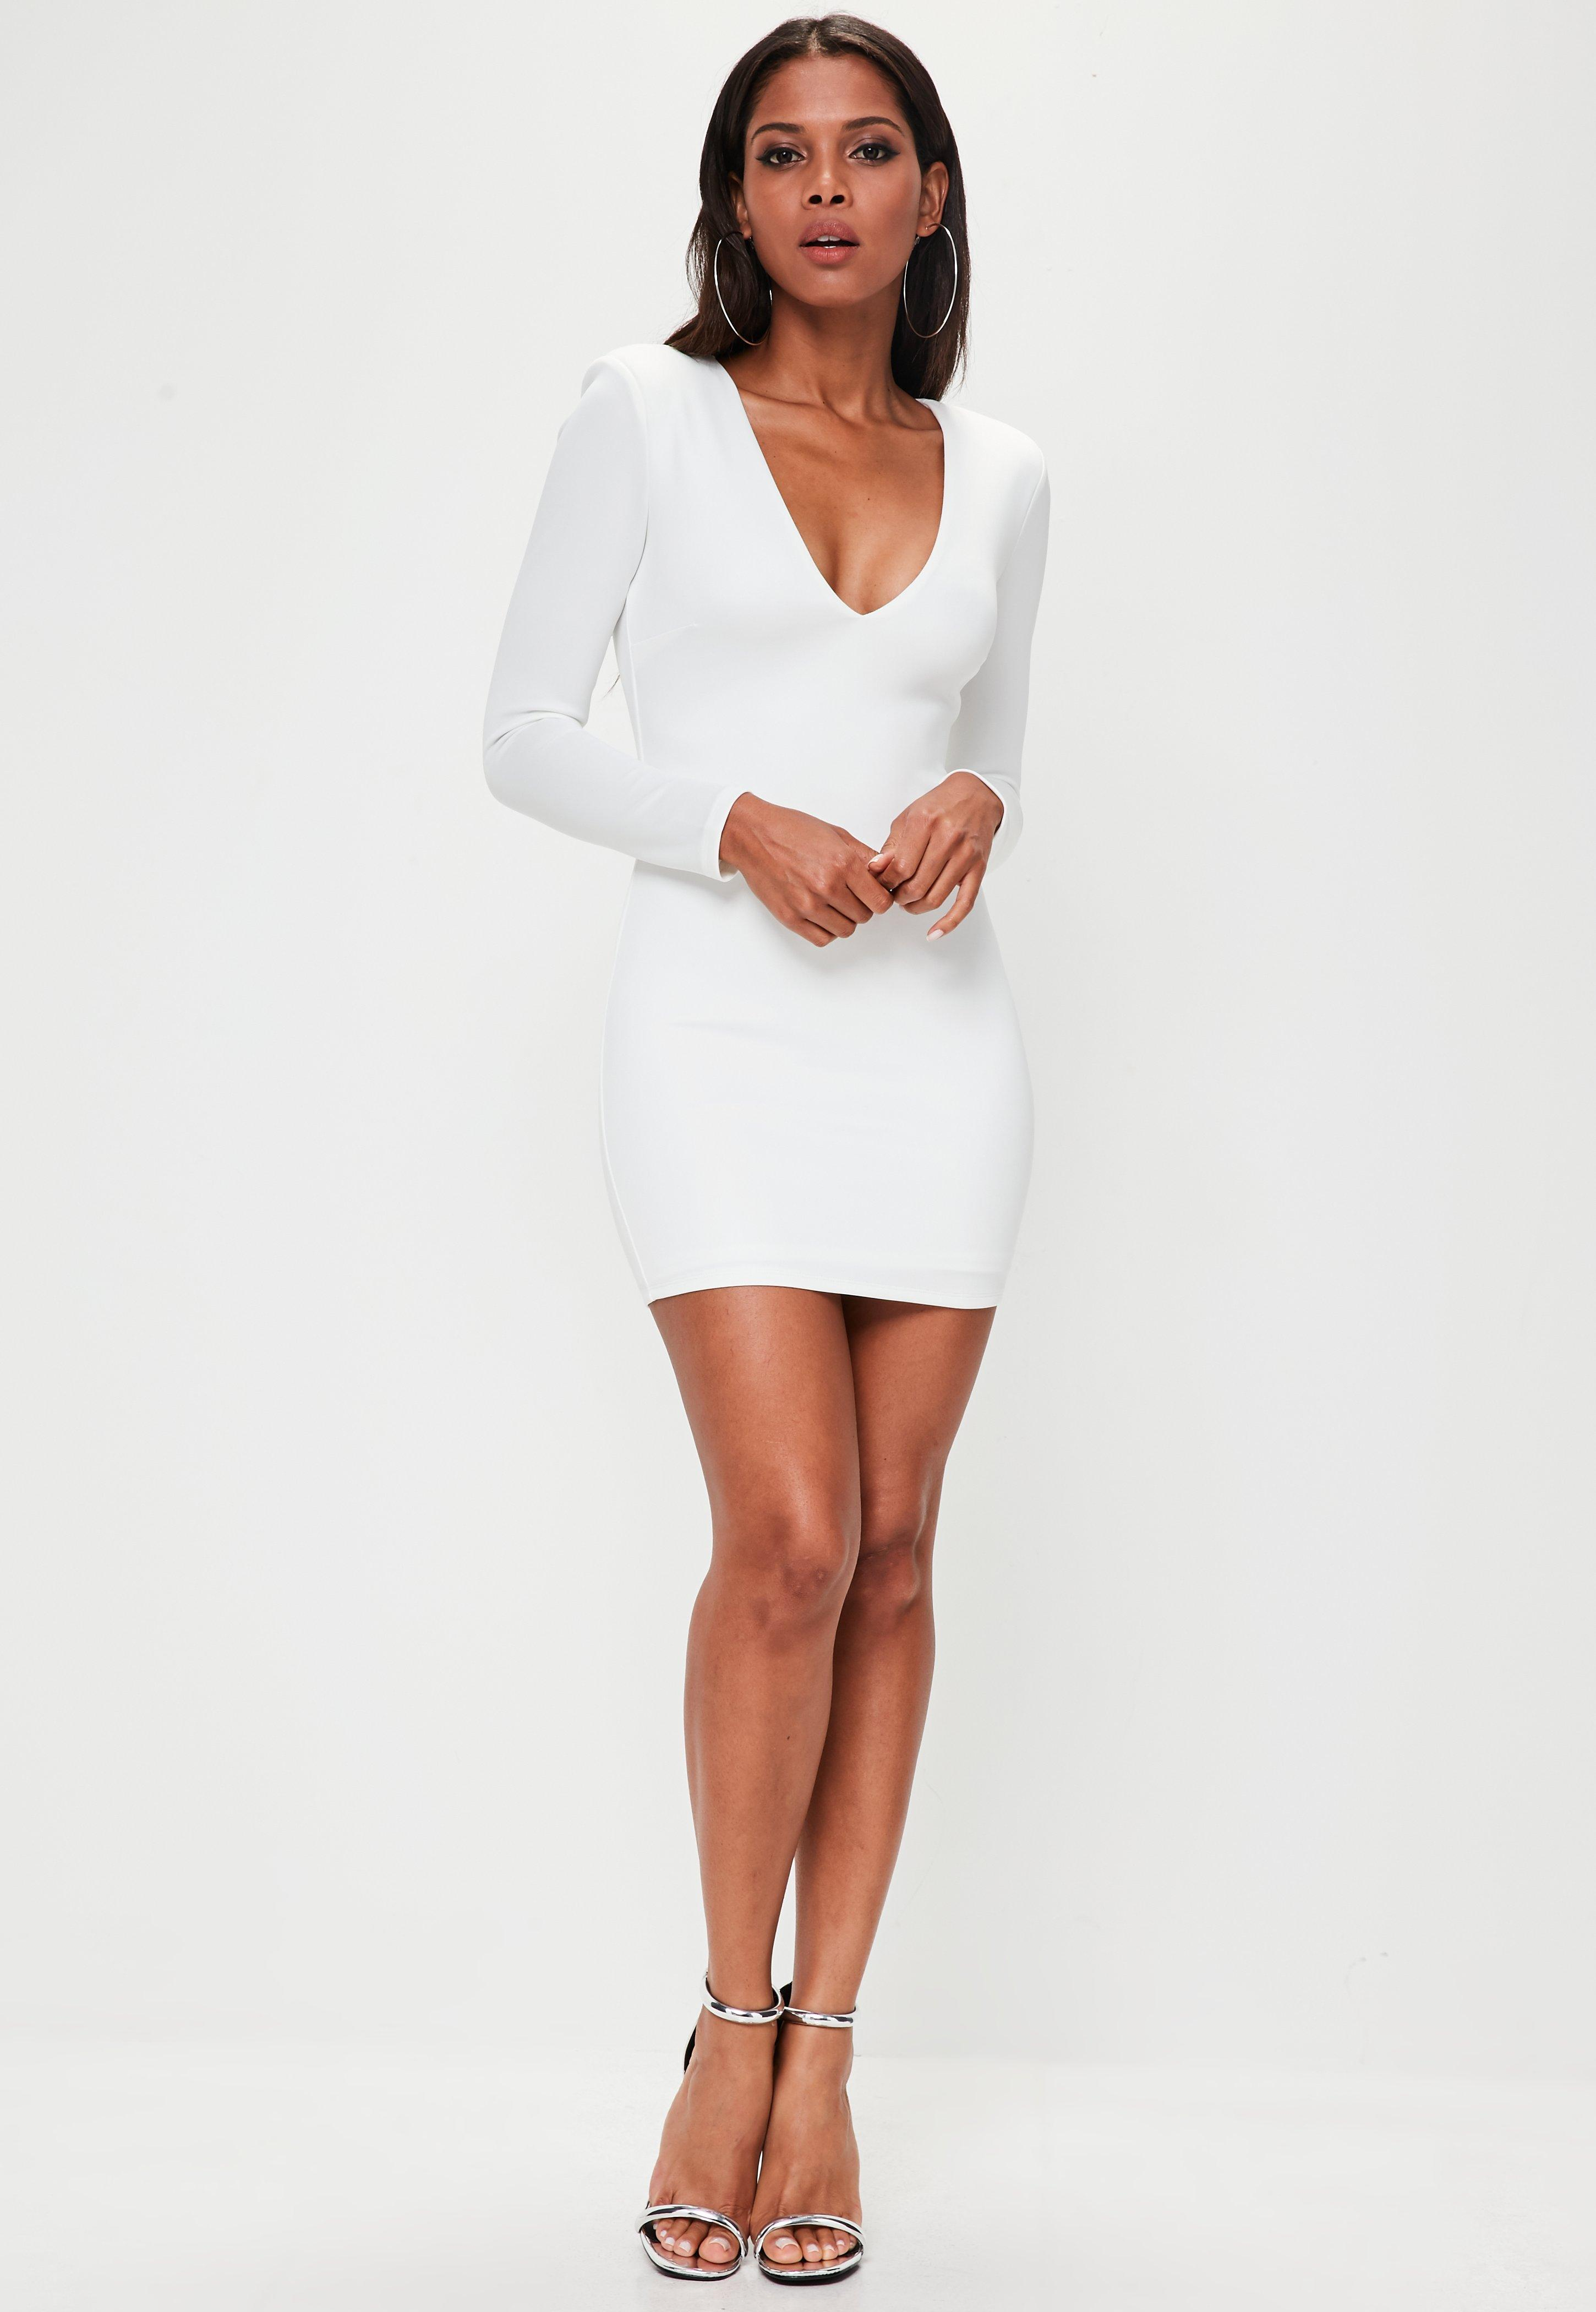 b47d783795d38 Lyst - Missguided White Extreme Shoulder Plunge Mini Dress in White